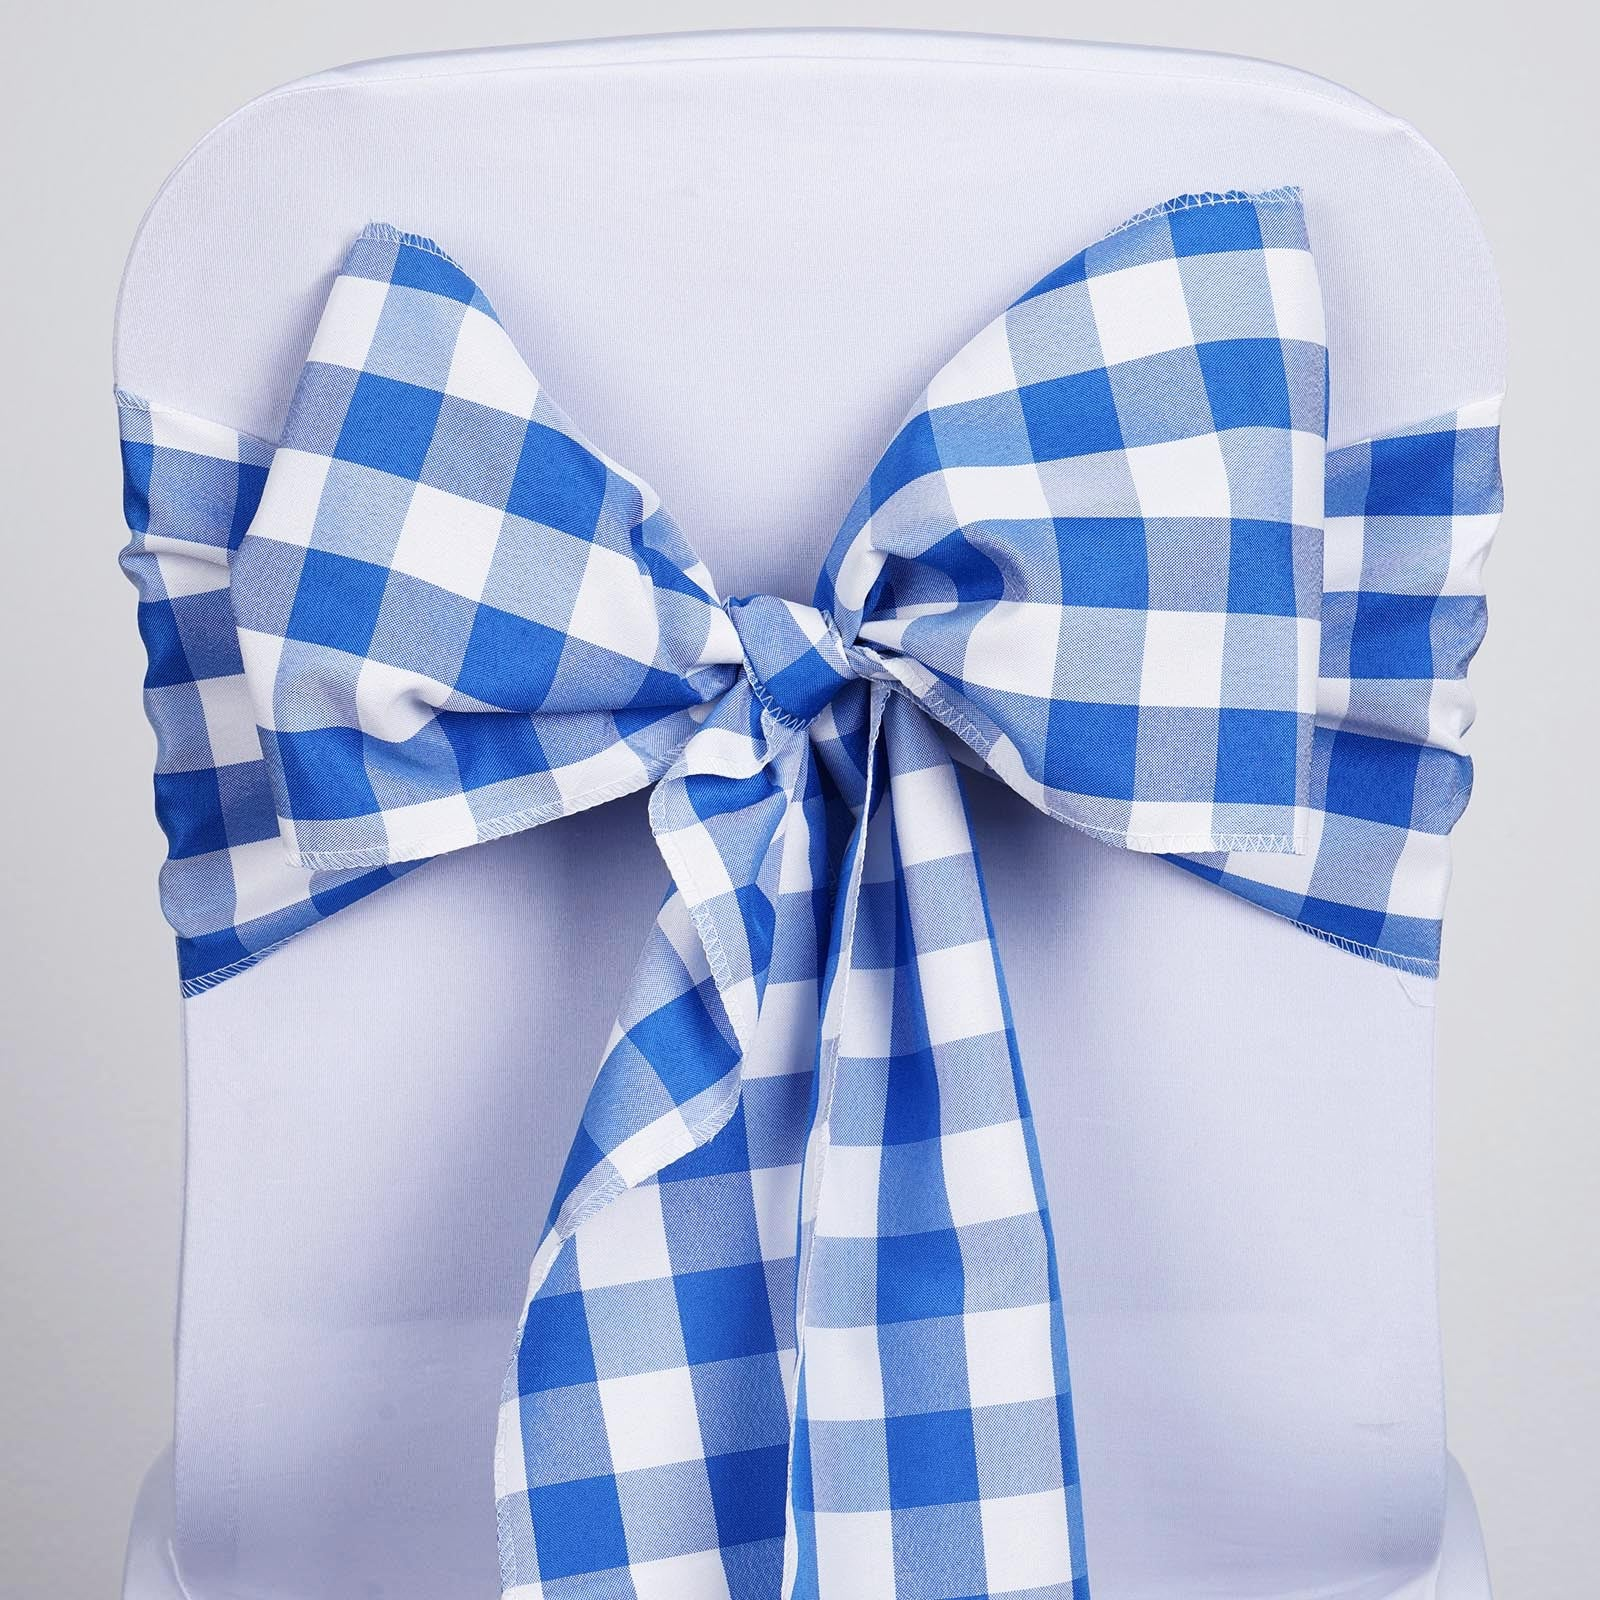 Prime Gingham Chair Sashes 5 Pcs Royal Blue White Buffalo Plaid Checkered Polyester Chair Sashes Andrewgaddart Wooden Chair Designs For Living Room Andrewgaddartcom